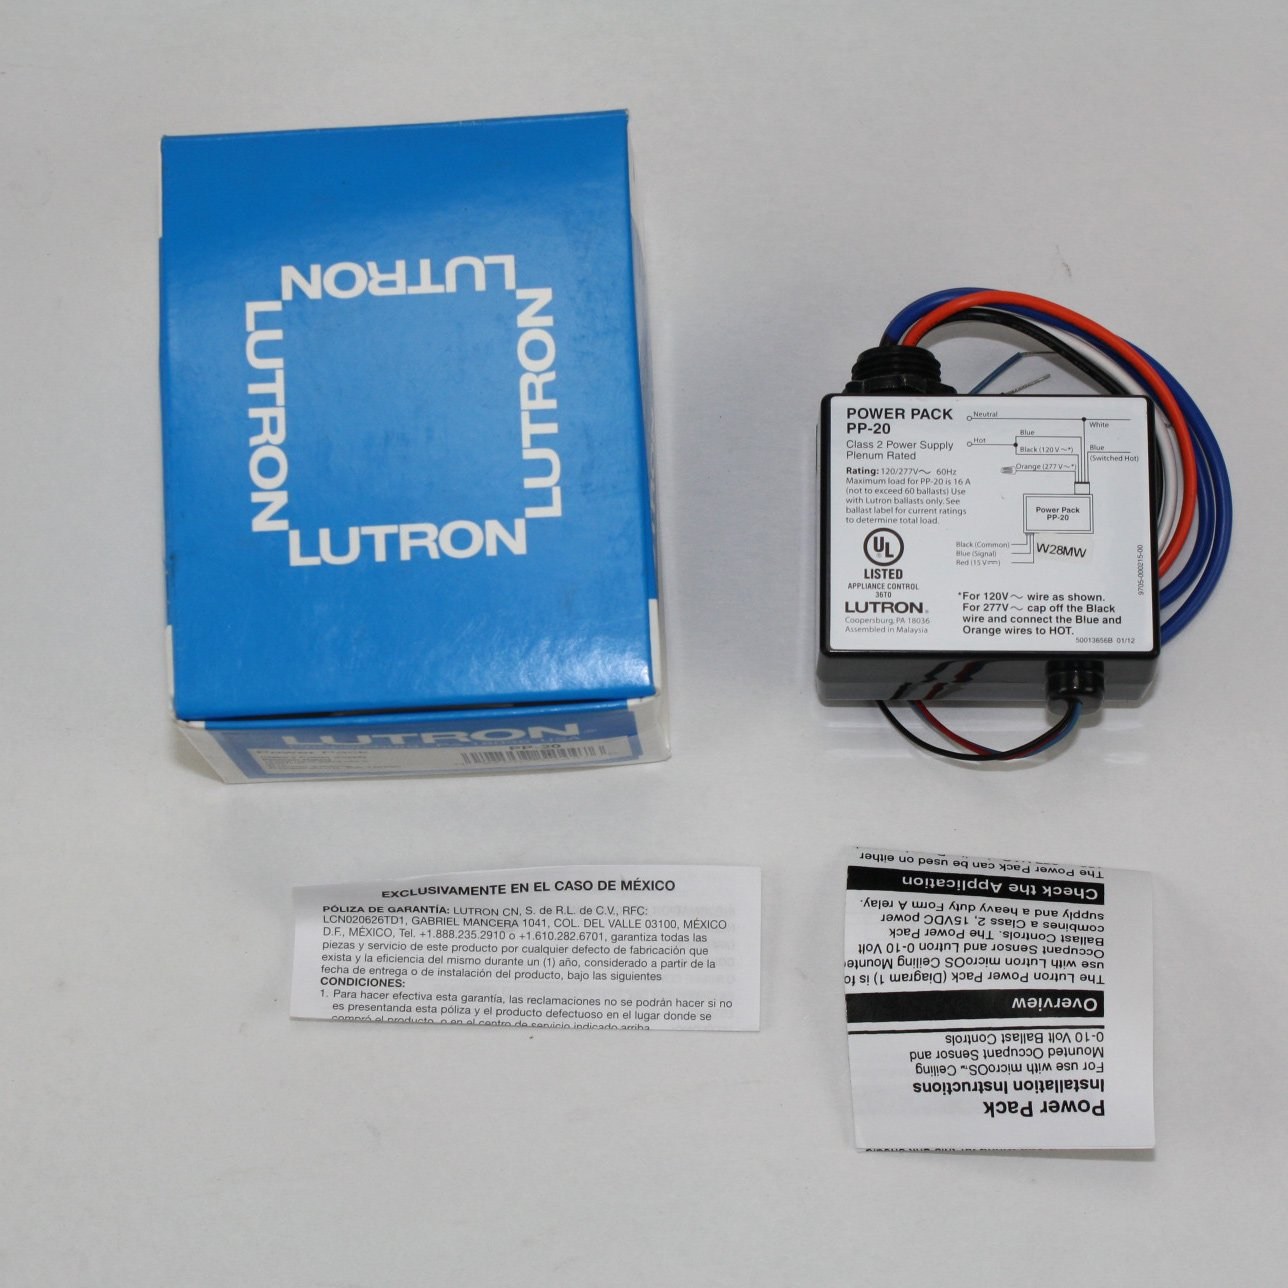 Lutron PP-20 Power Pack For Lutron Ballast Only 120/277V 16AMP 16A ...